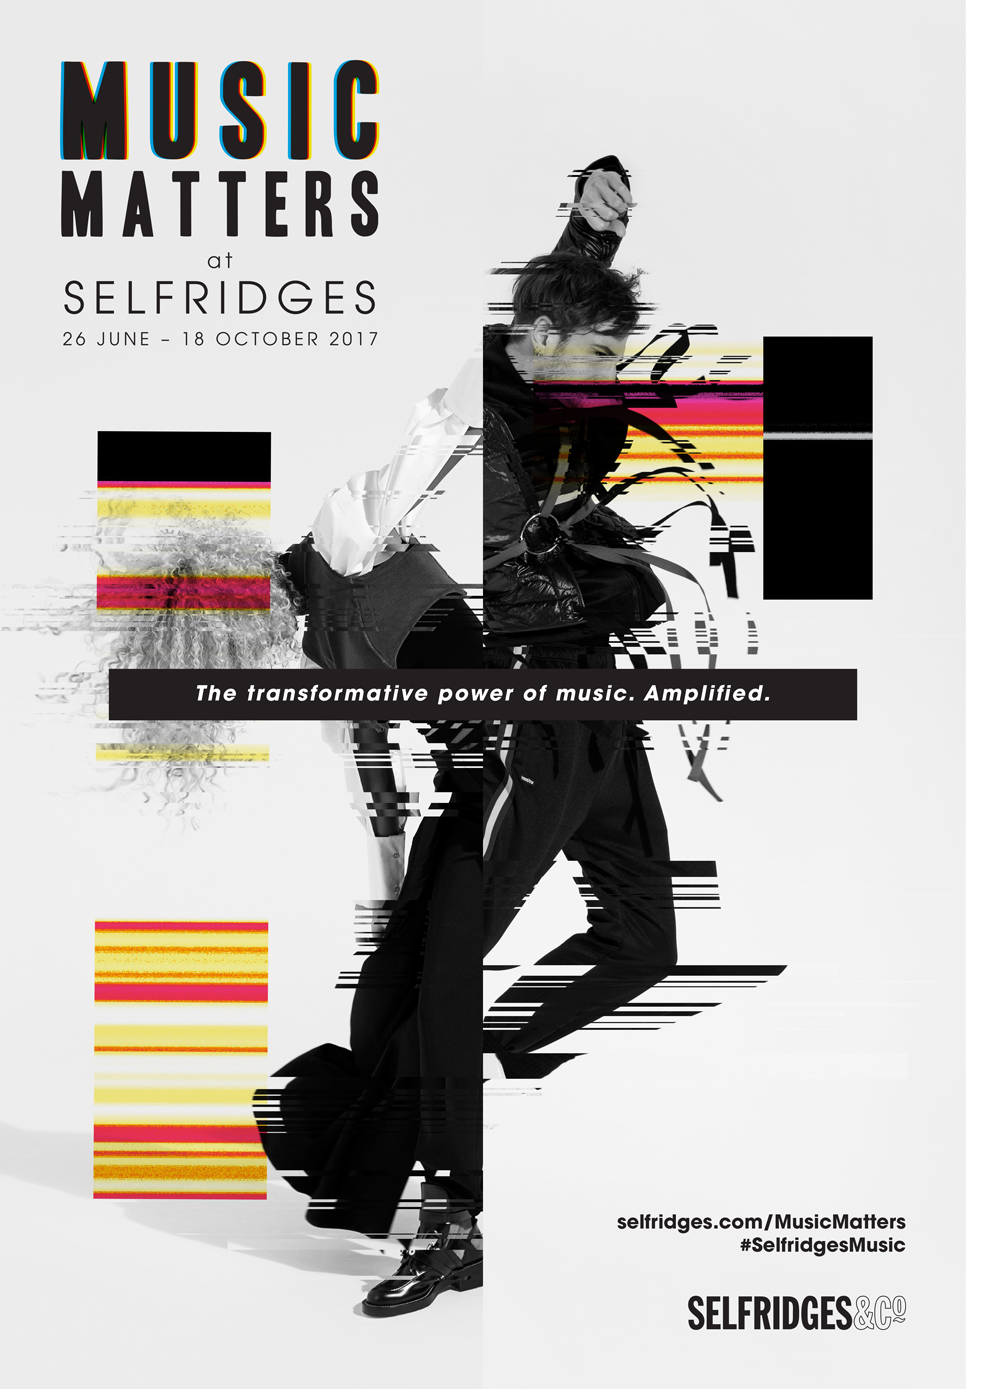 CS17009_Music_Matters_Hero_Poster_A2_AW_HR-1.jpg